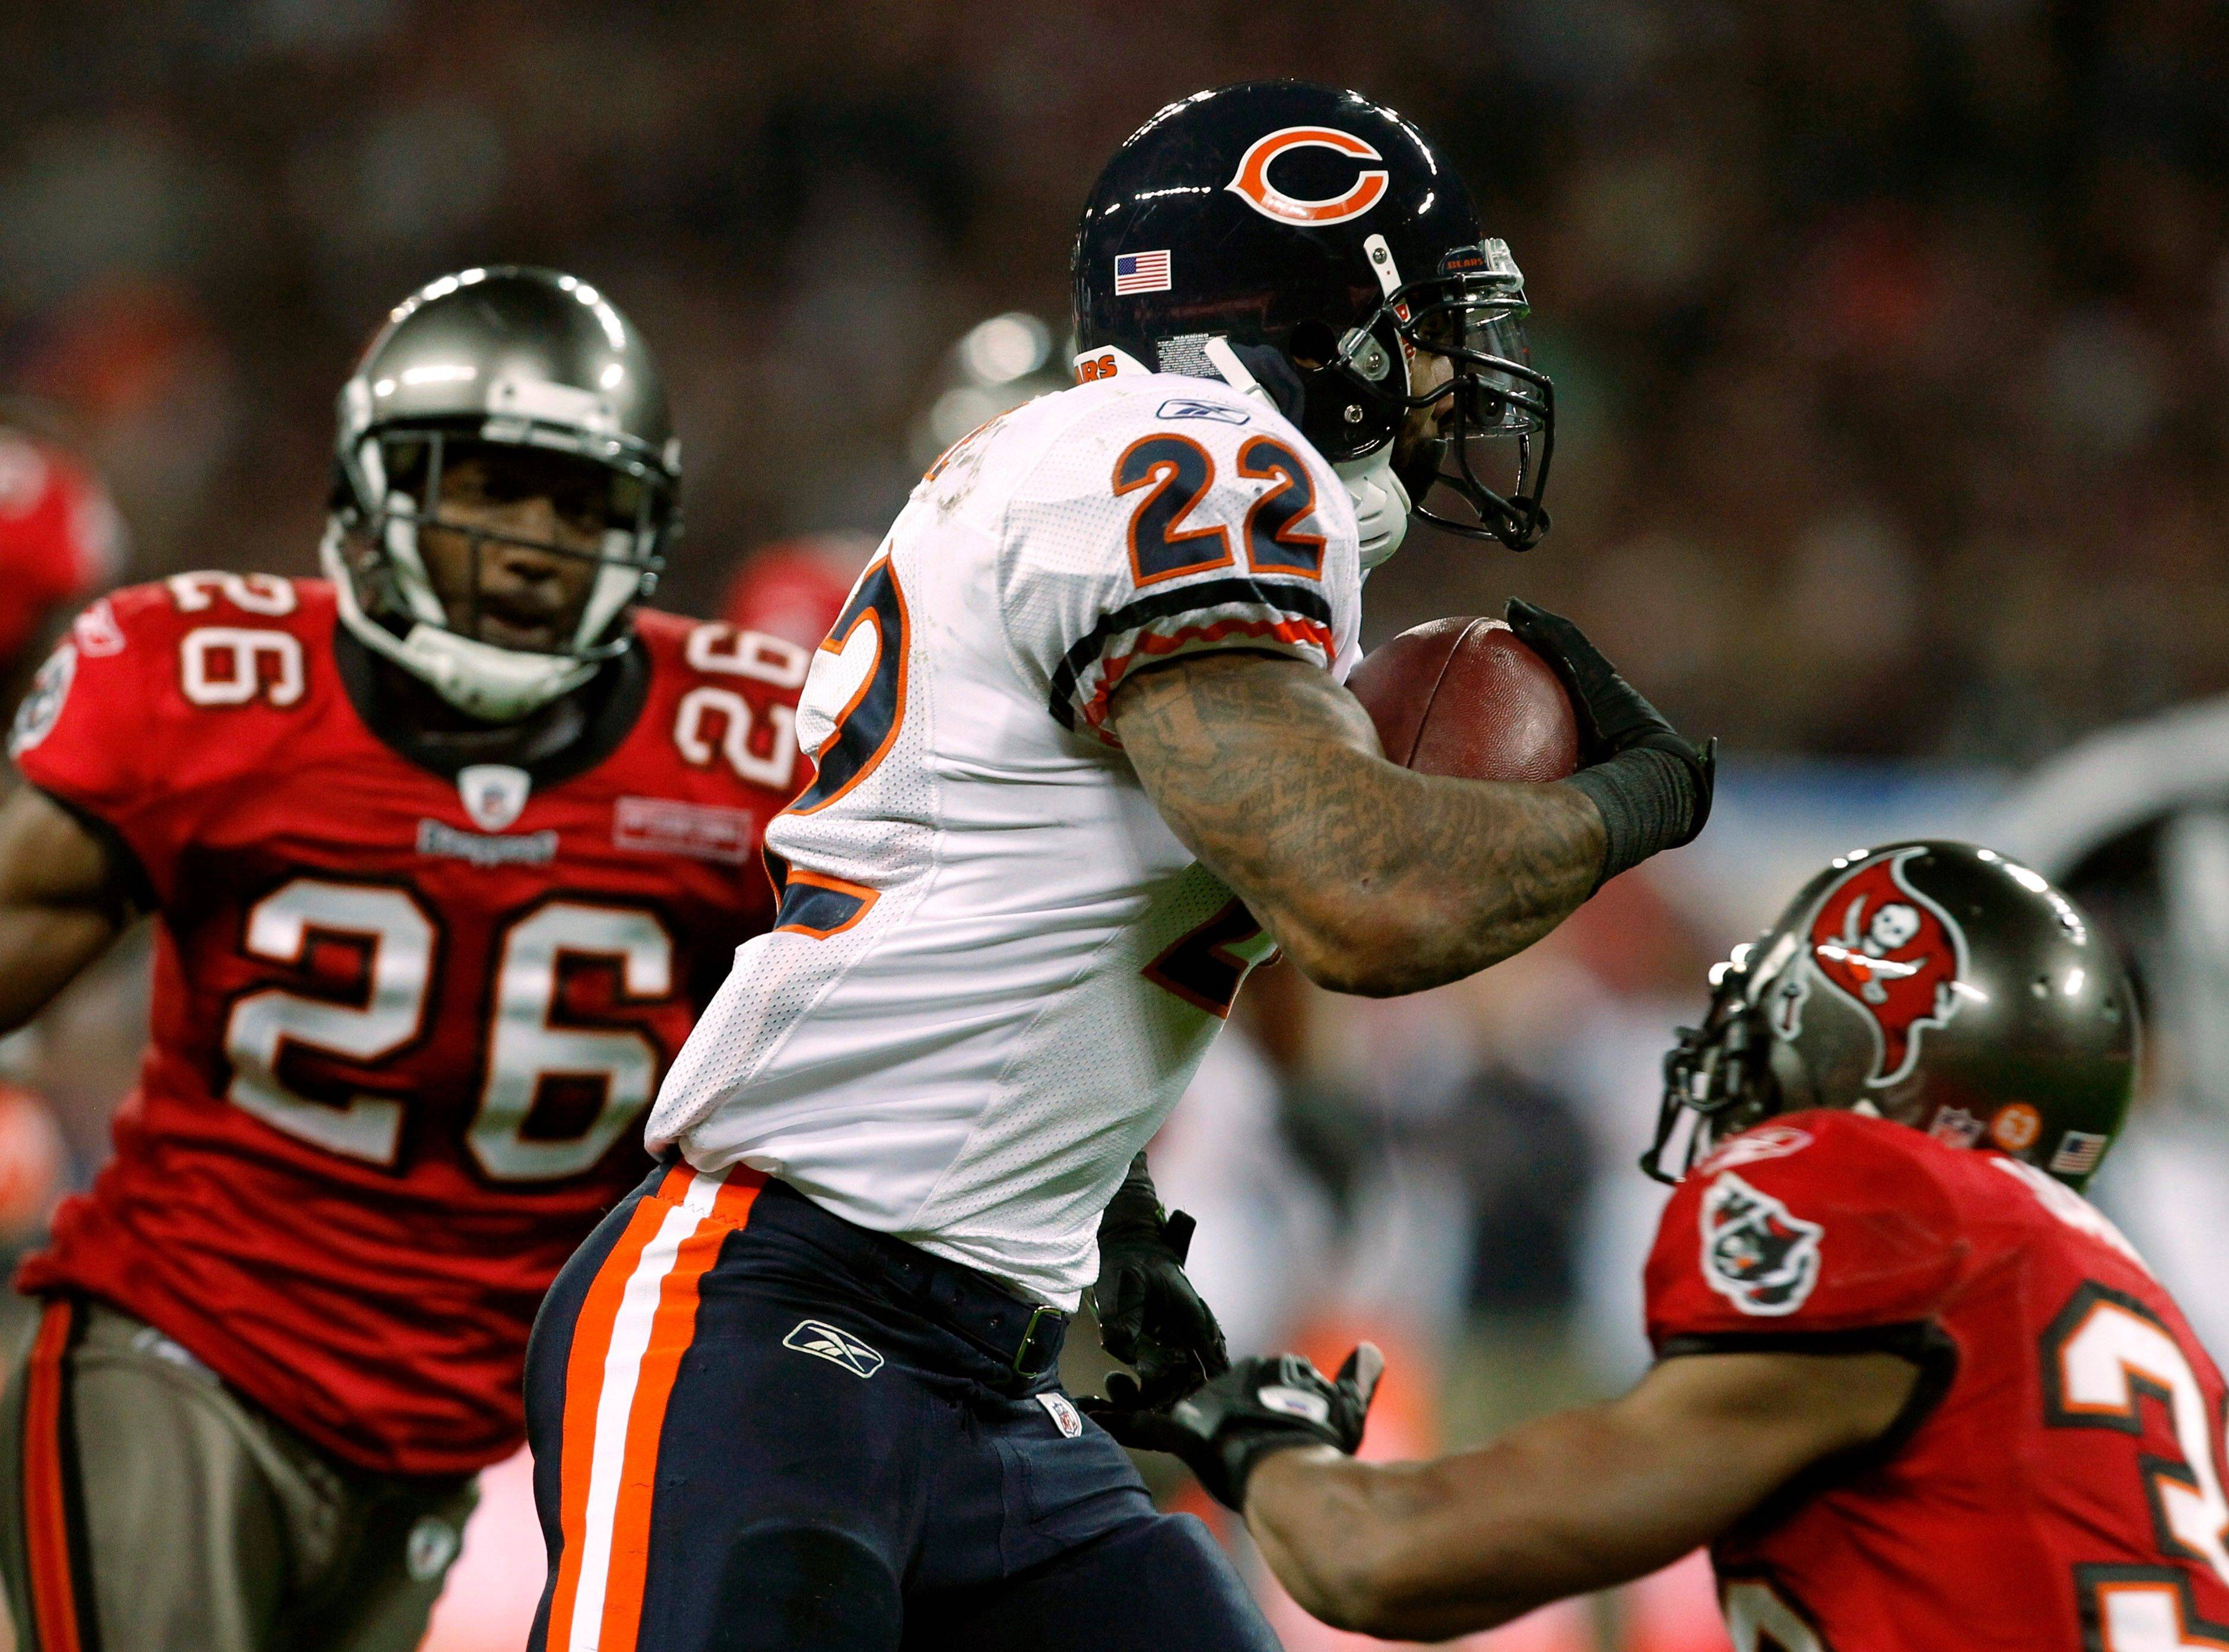 Chicago Bears running back Matt Forte breaks away for a 32-yard touchdown during the first half.